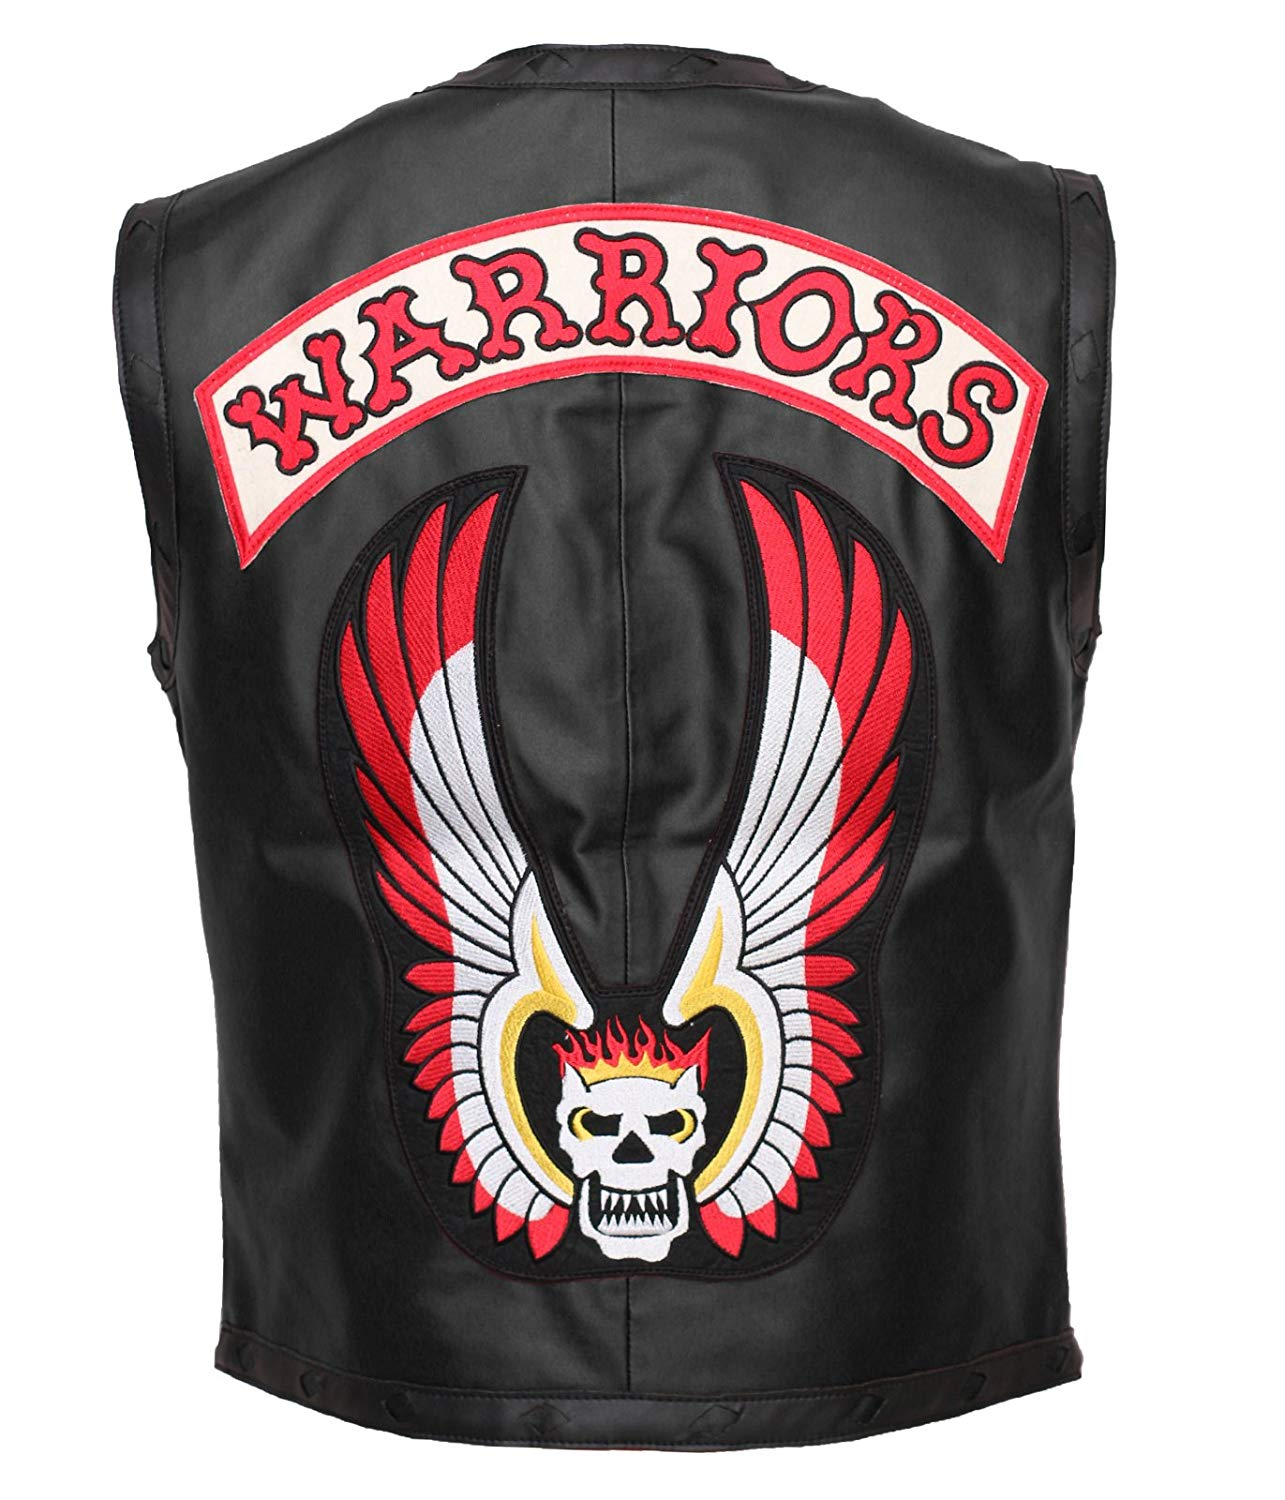 Herts Leather Skull Emroidered Mens Gang Warrior Style Synthetic Leather HQ Vest In Black